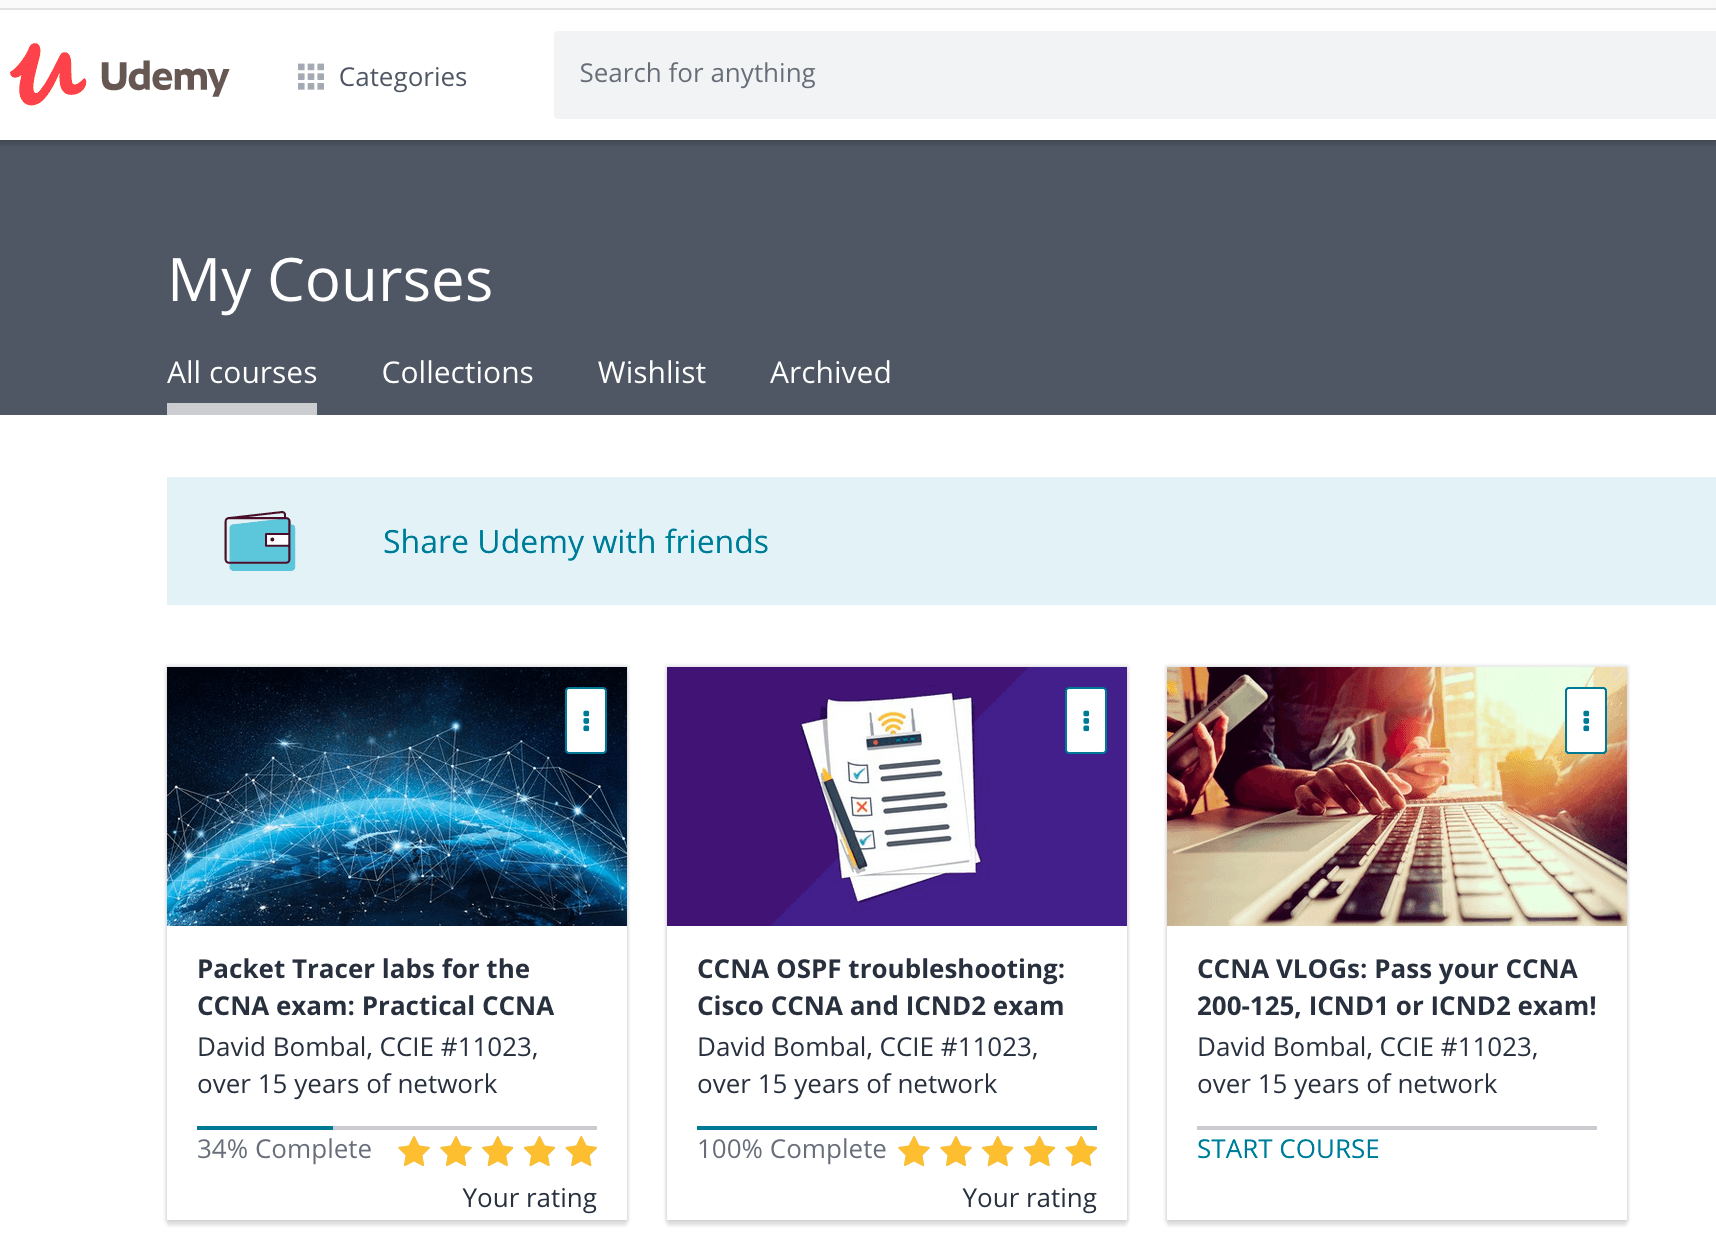 Udemy's online courses